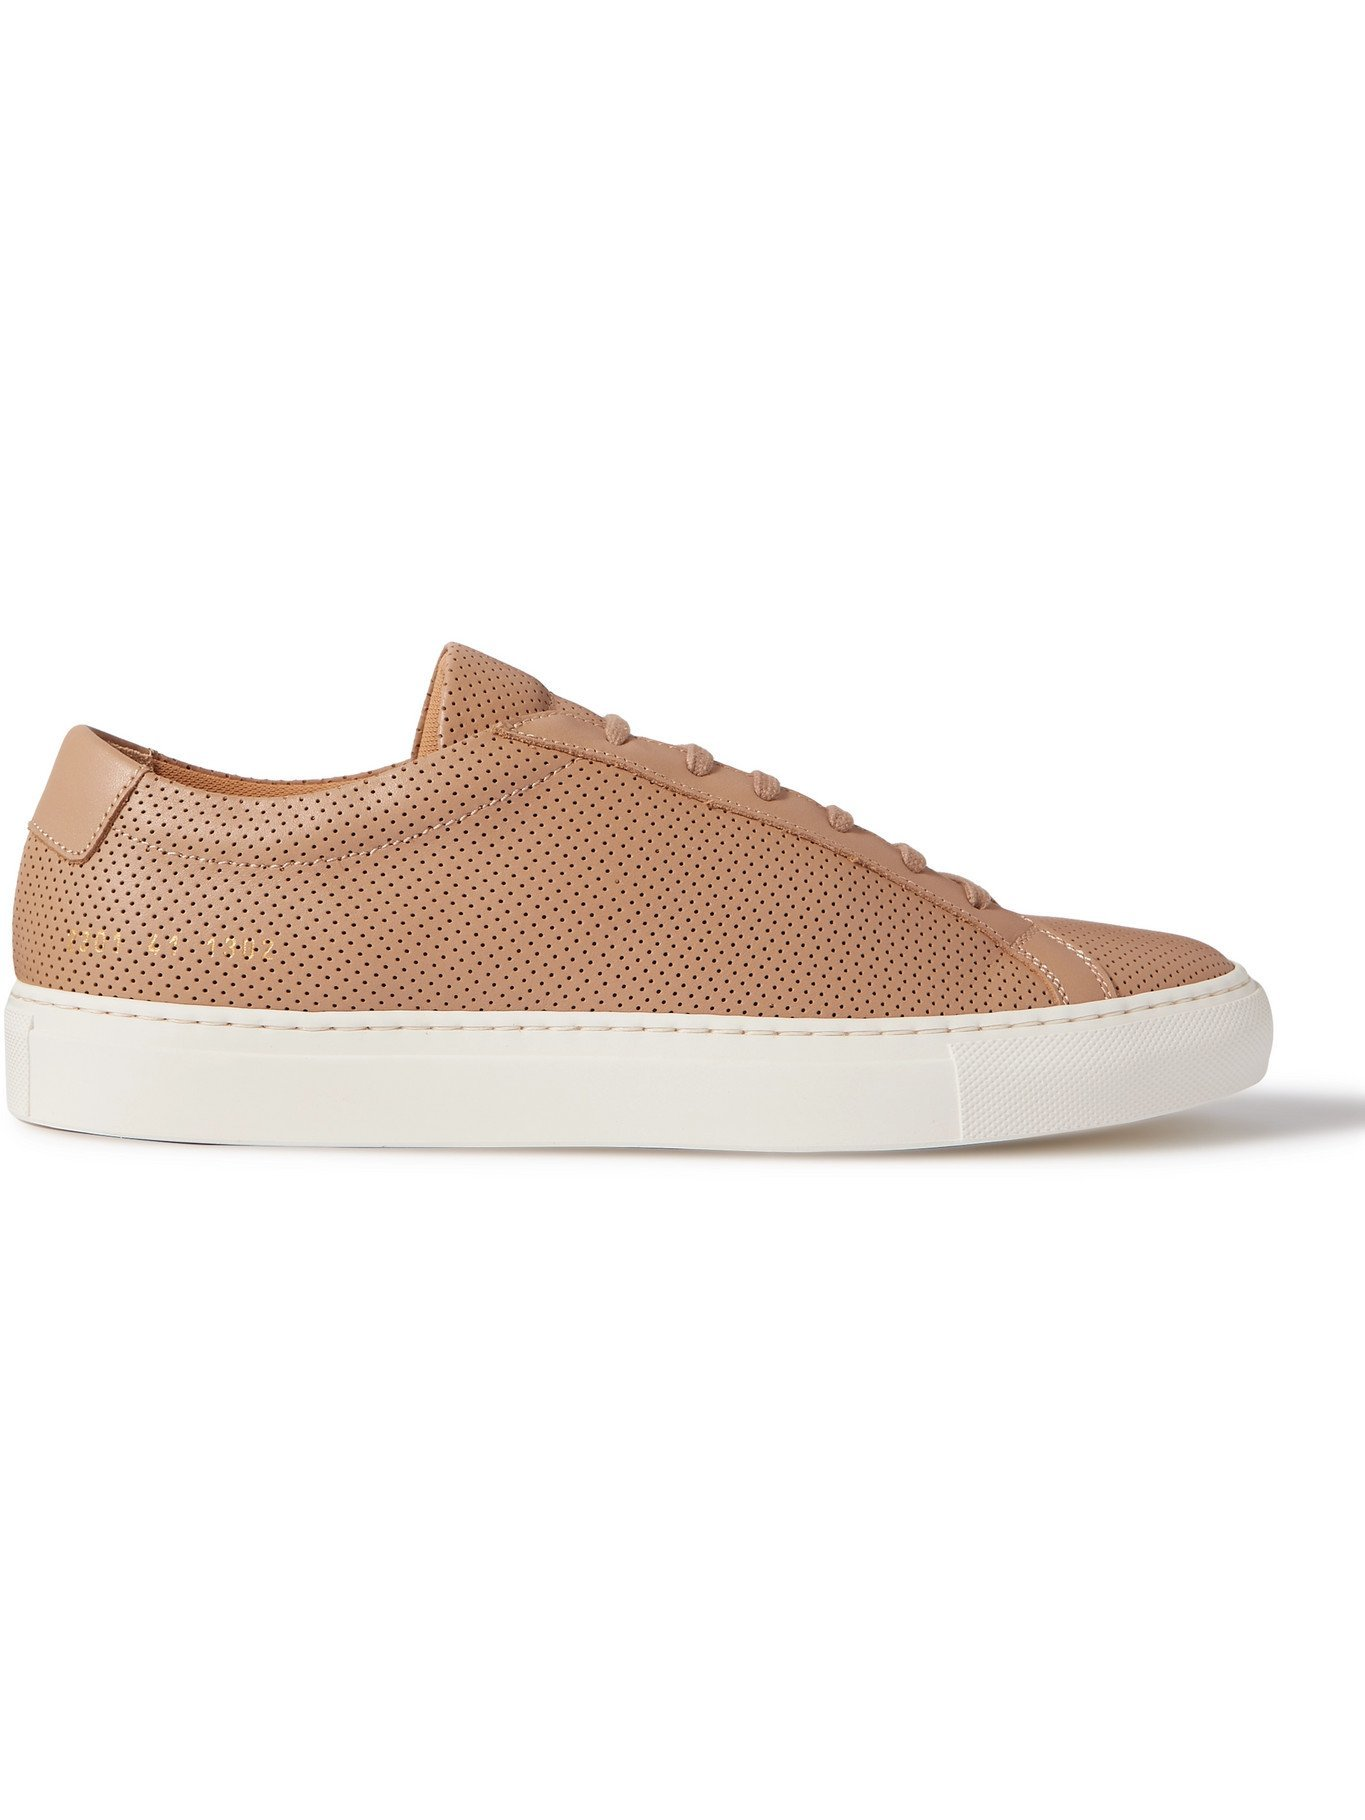 Photo: COMMON PROJECTS - Achilles Perforated Leather Sneakers - Brown